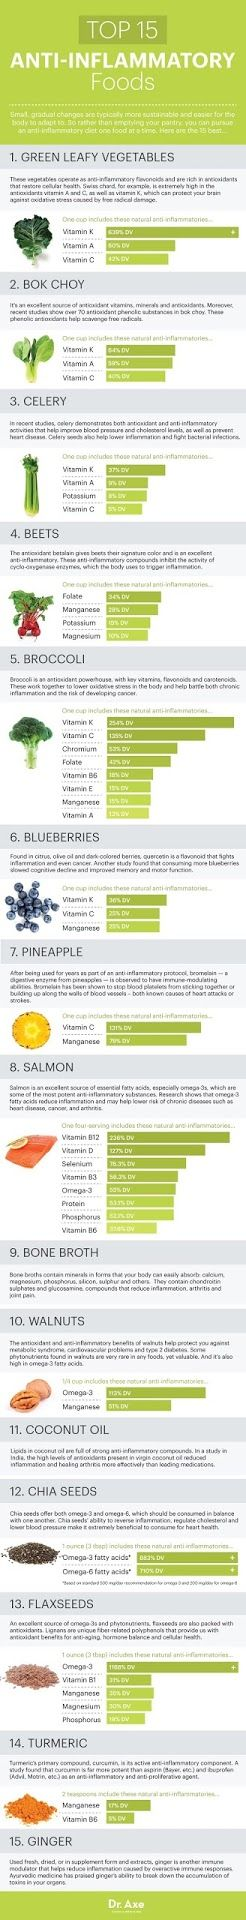 Top 15 Anti-Inflammatory Foods [Infographic]